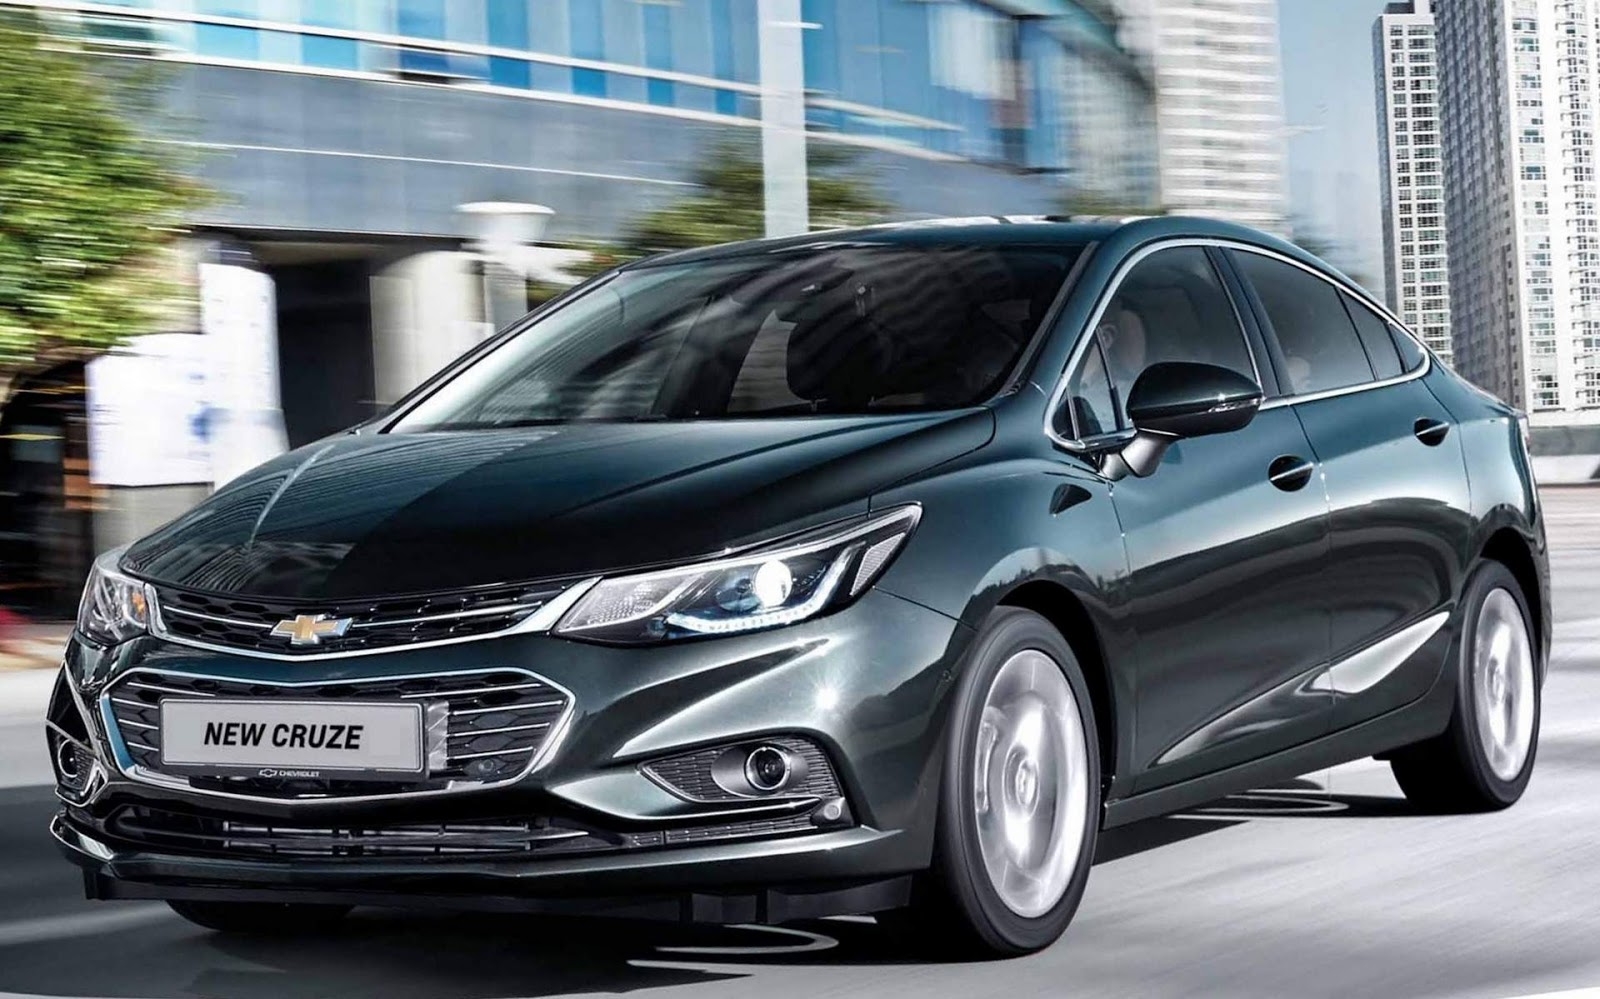 ae6fb9a2a GM Cruze terá motor 1.5 Turbo e câmbio AT9 marchas - 2018 | CAR.BLOG.BR